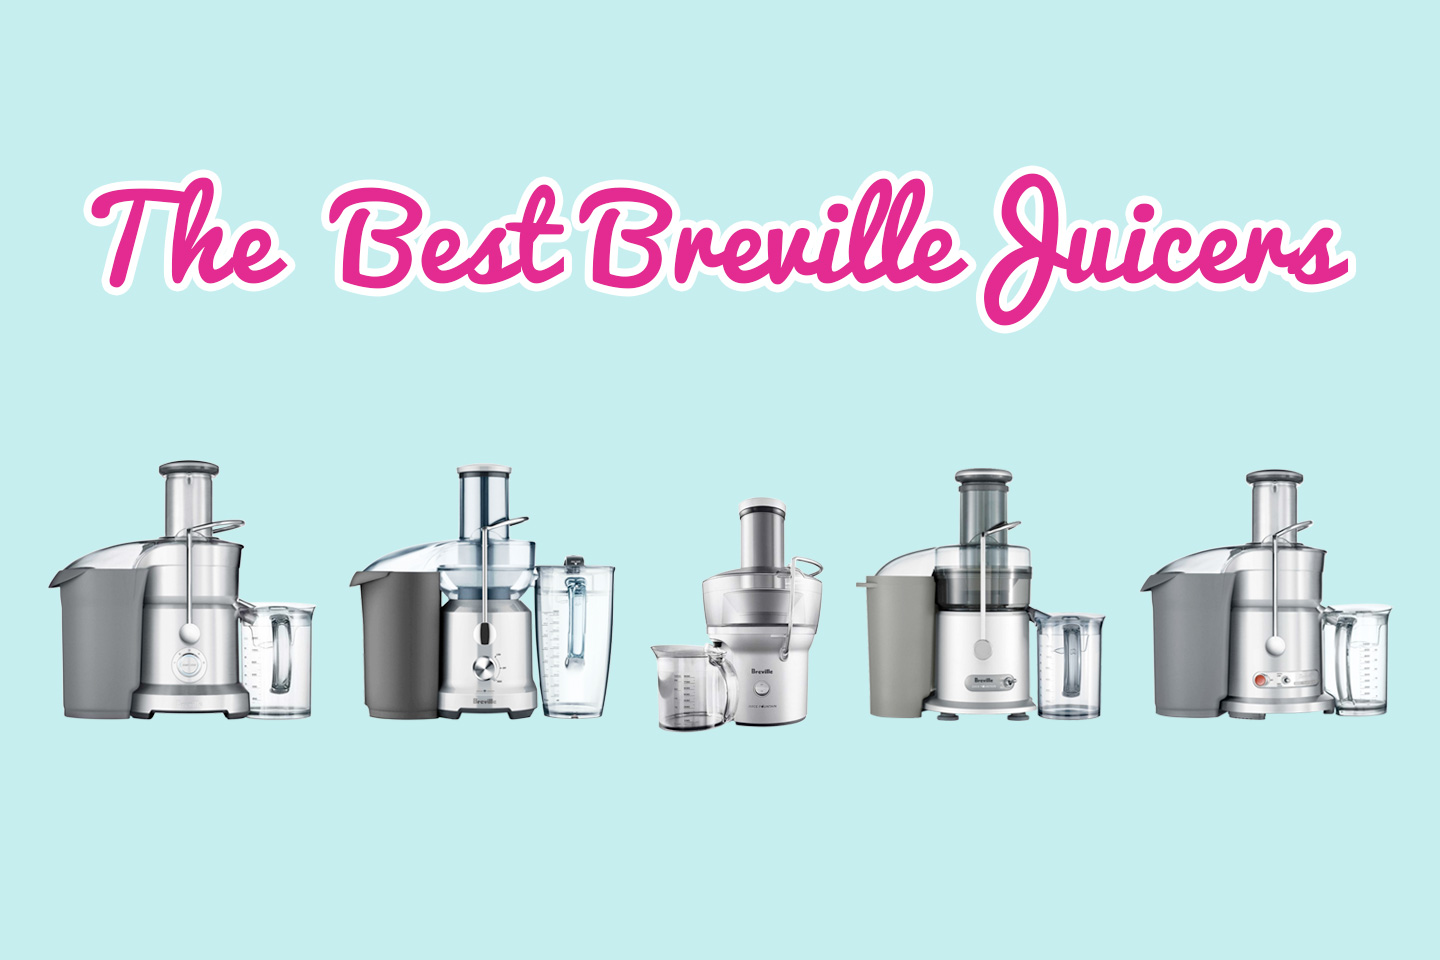 The Best Breville Juicer | Hearty Blends